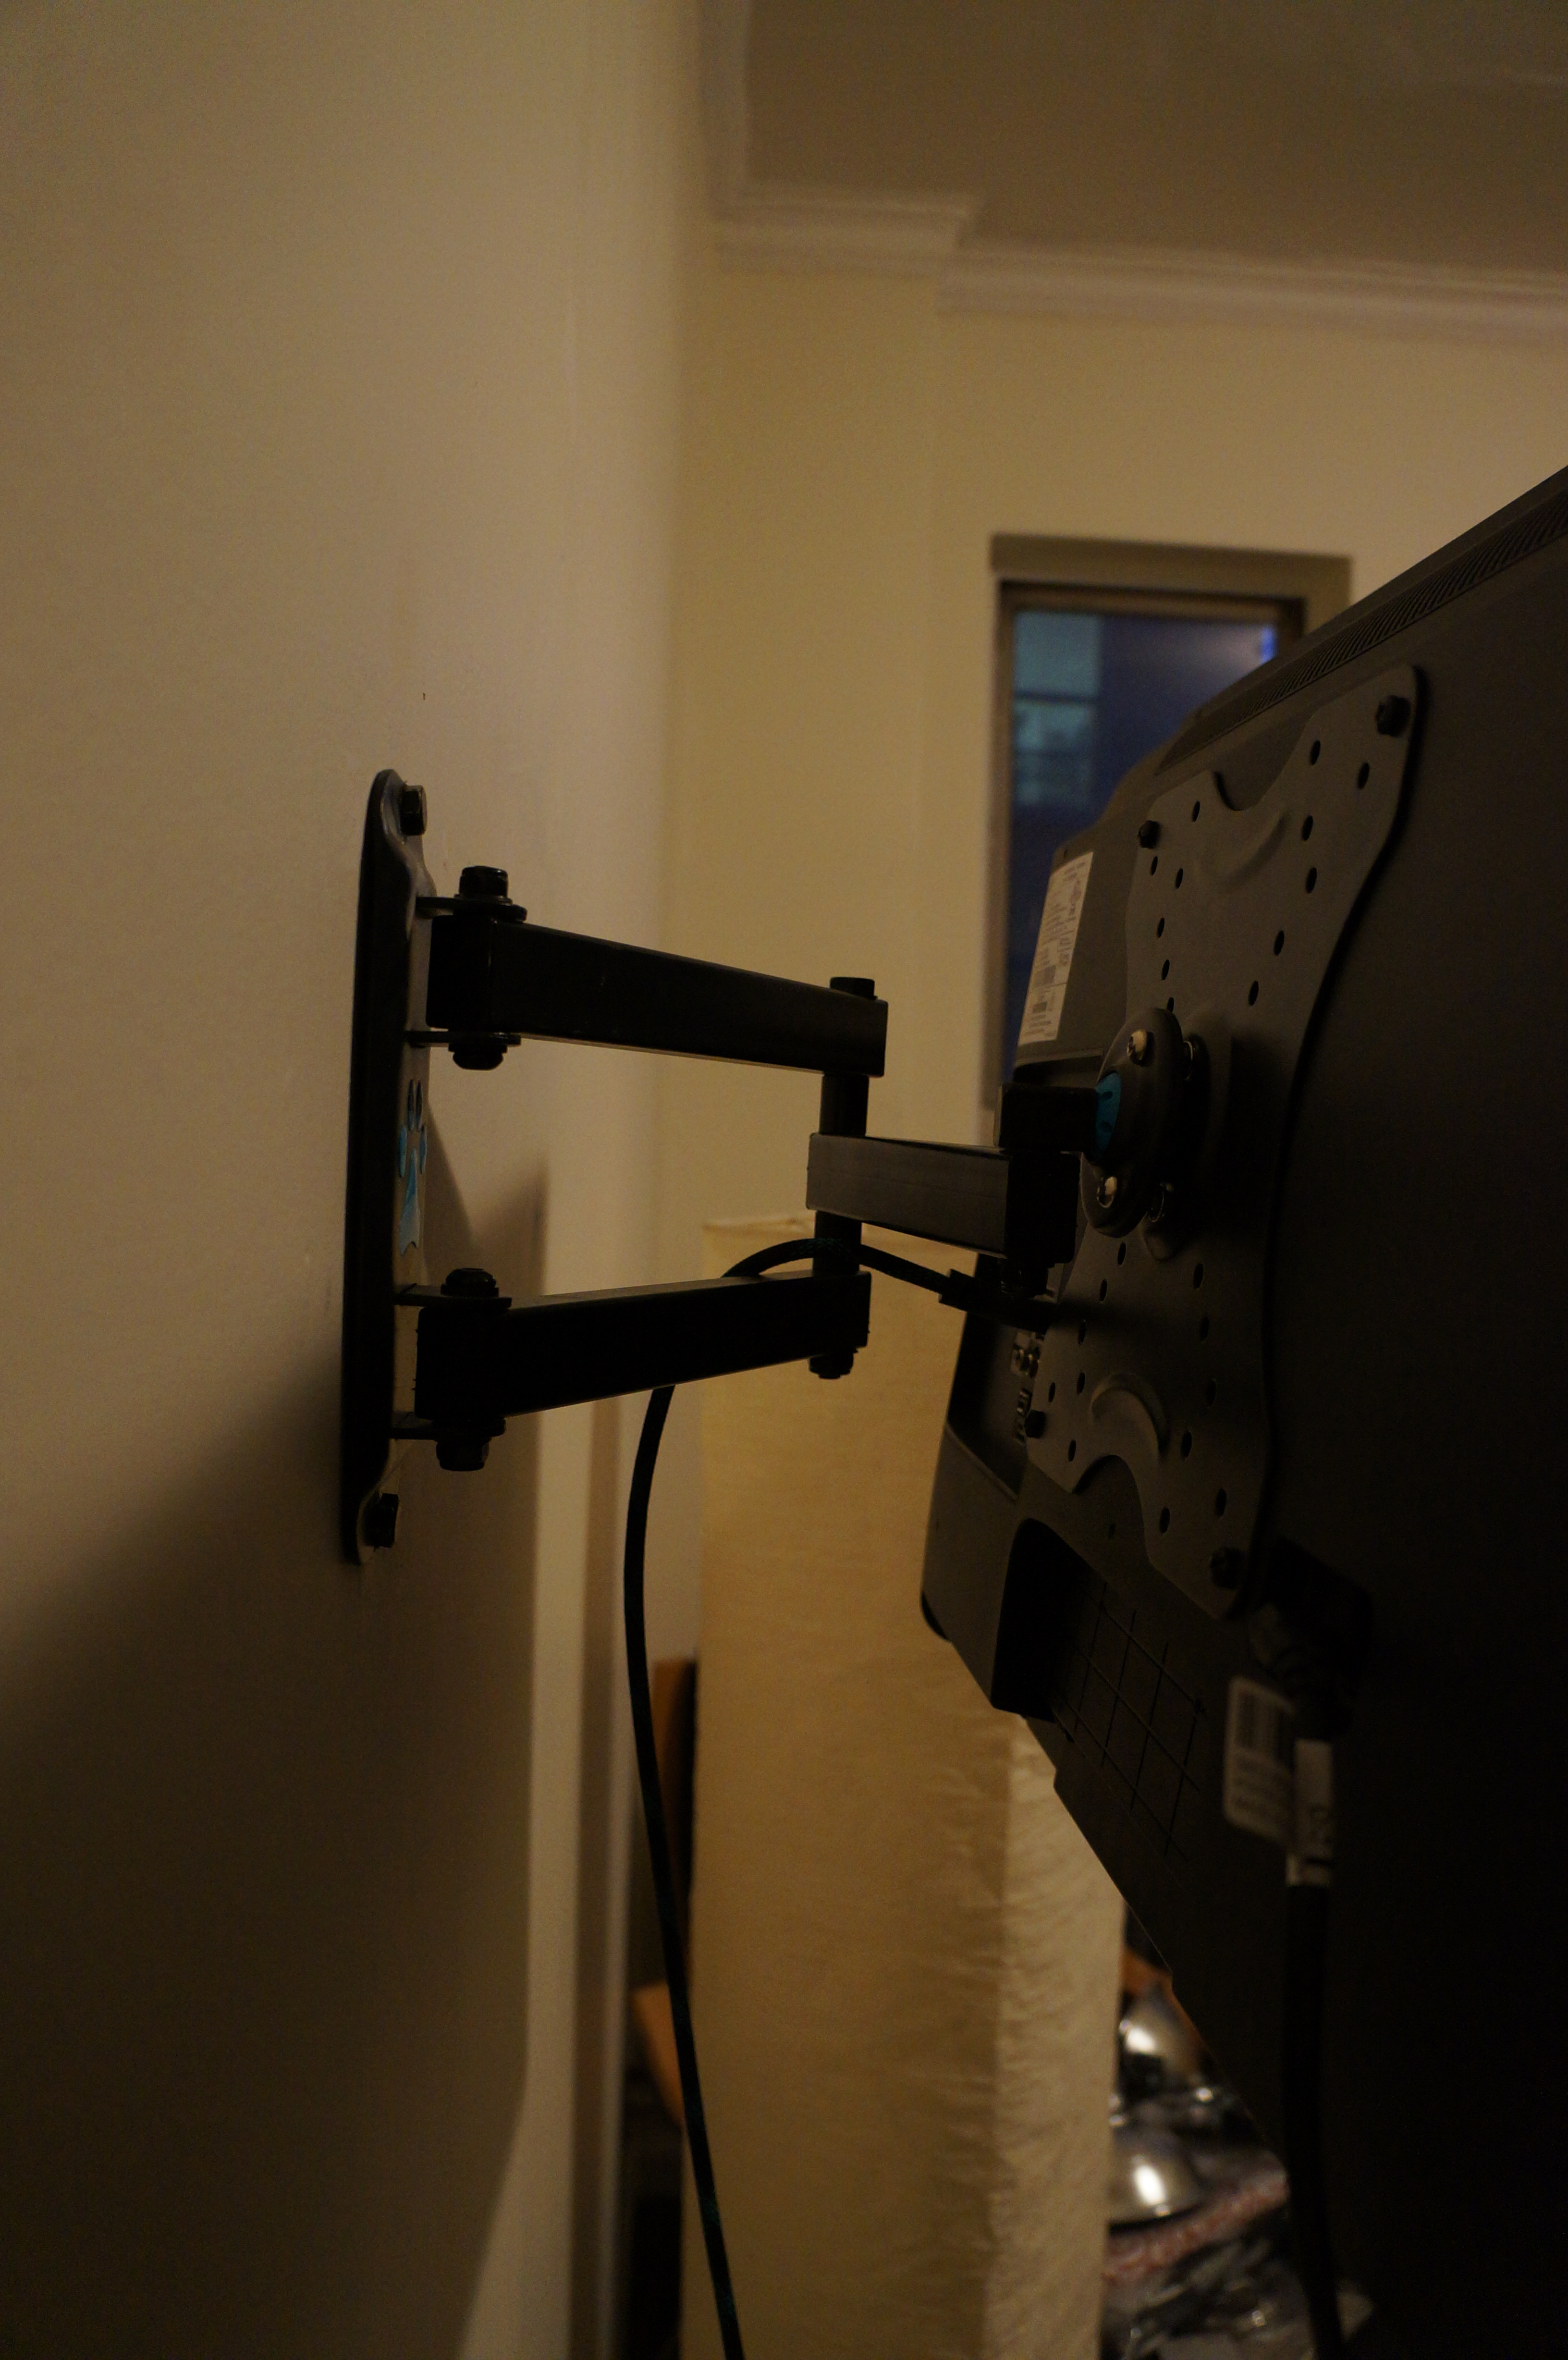 The mount for the TV is a Cheetah brand mount and itu0027s very flexible. It  lets you take the